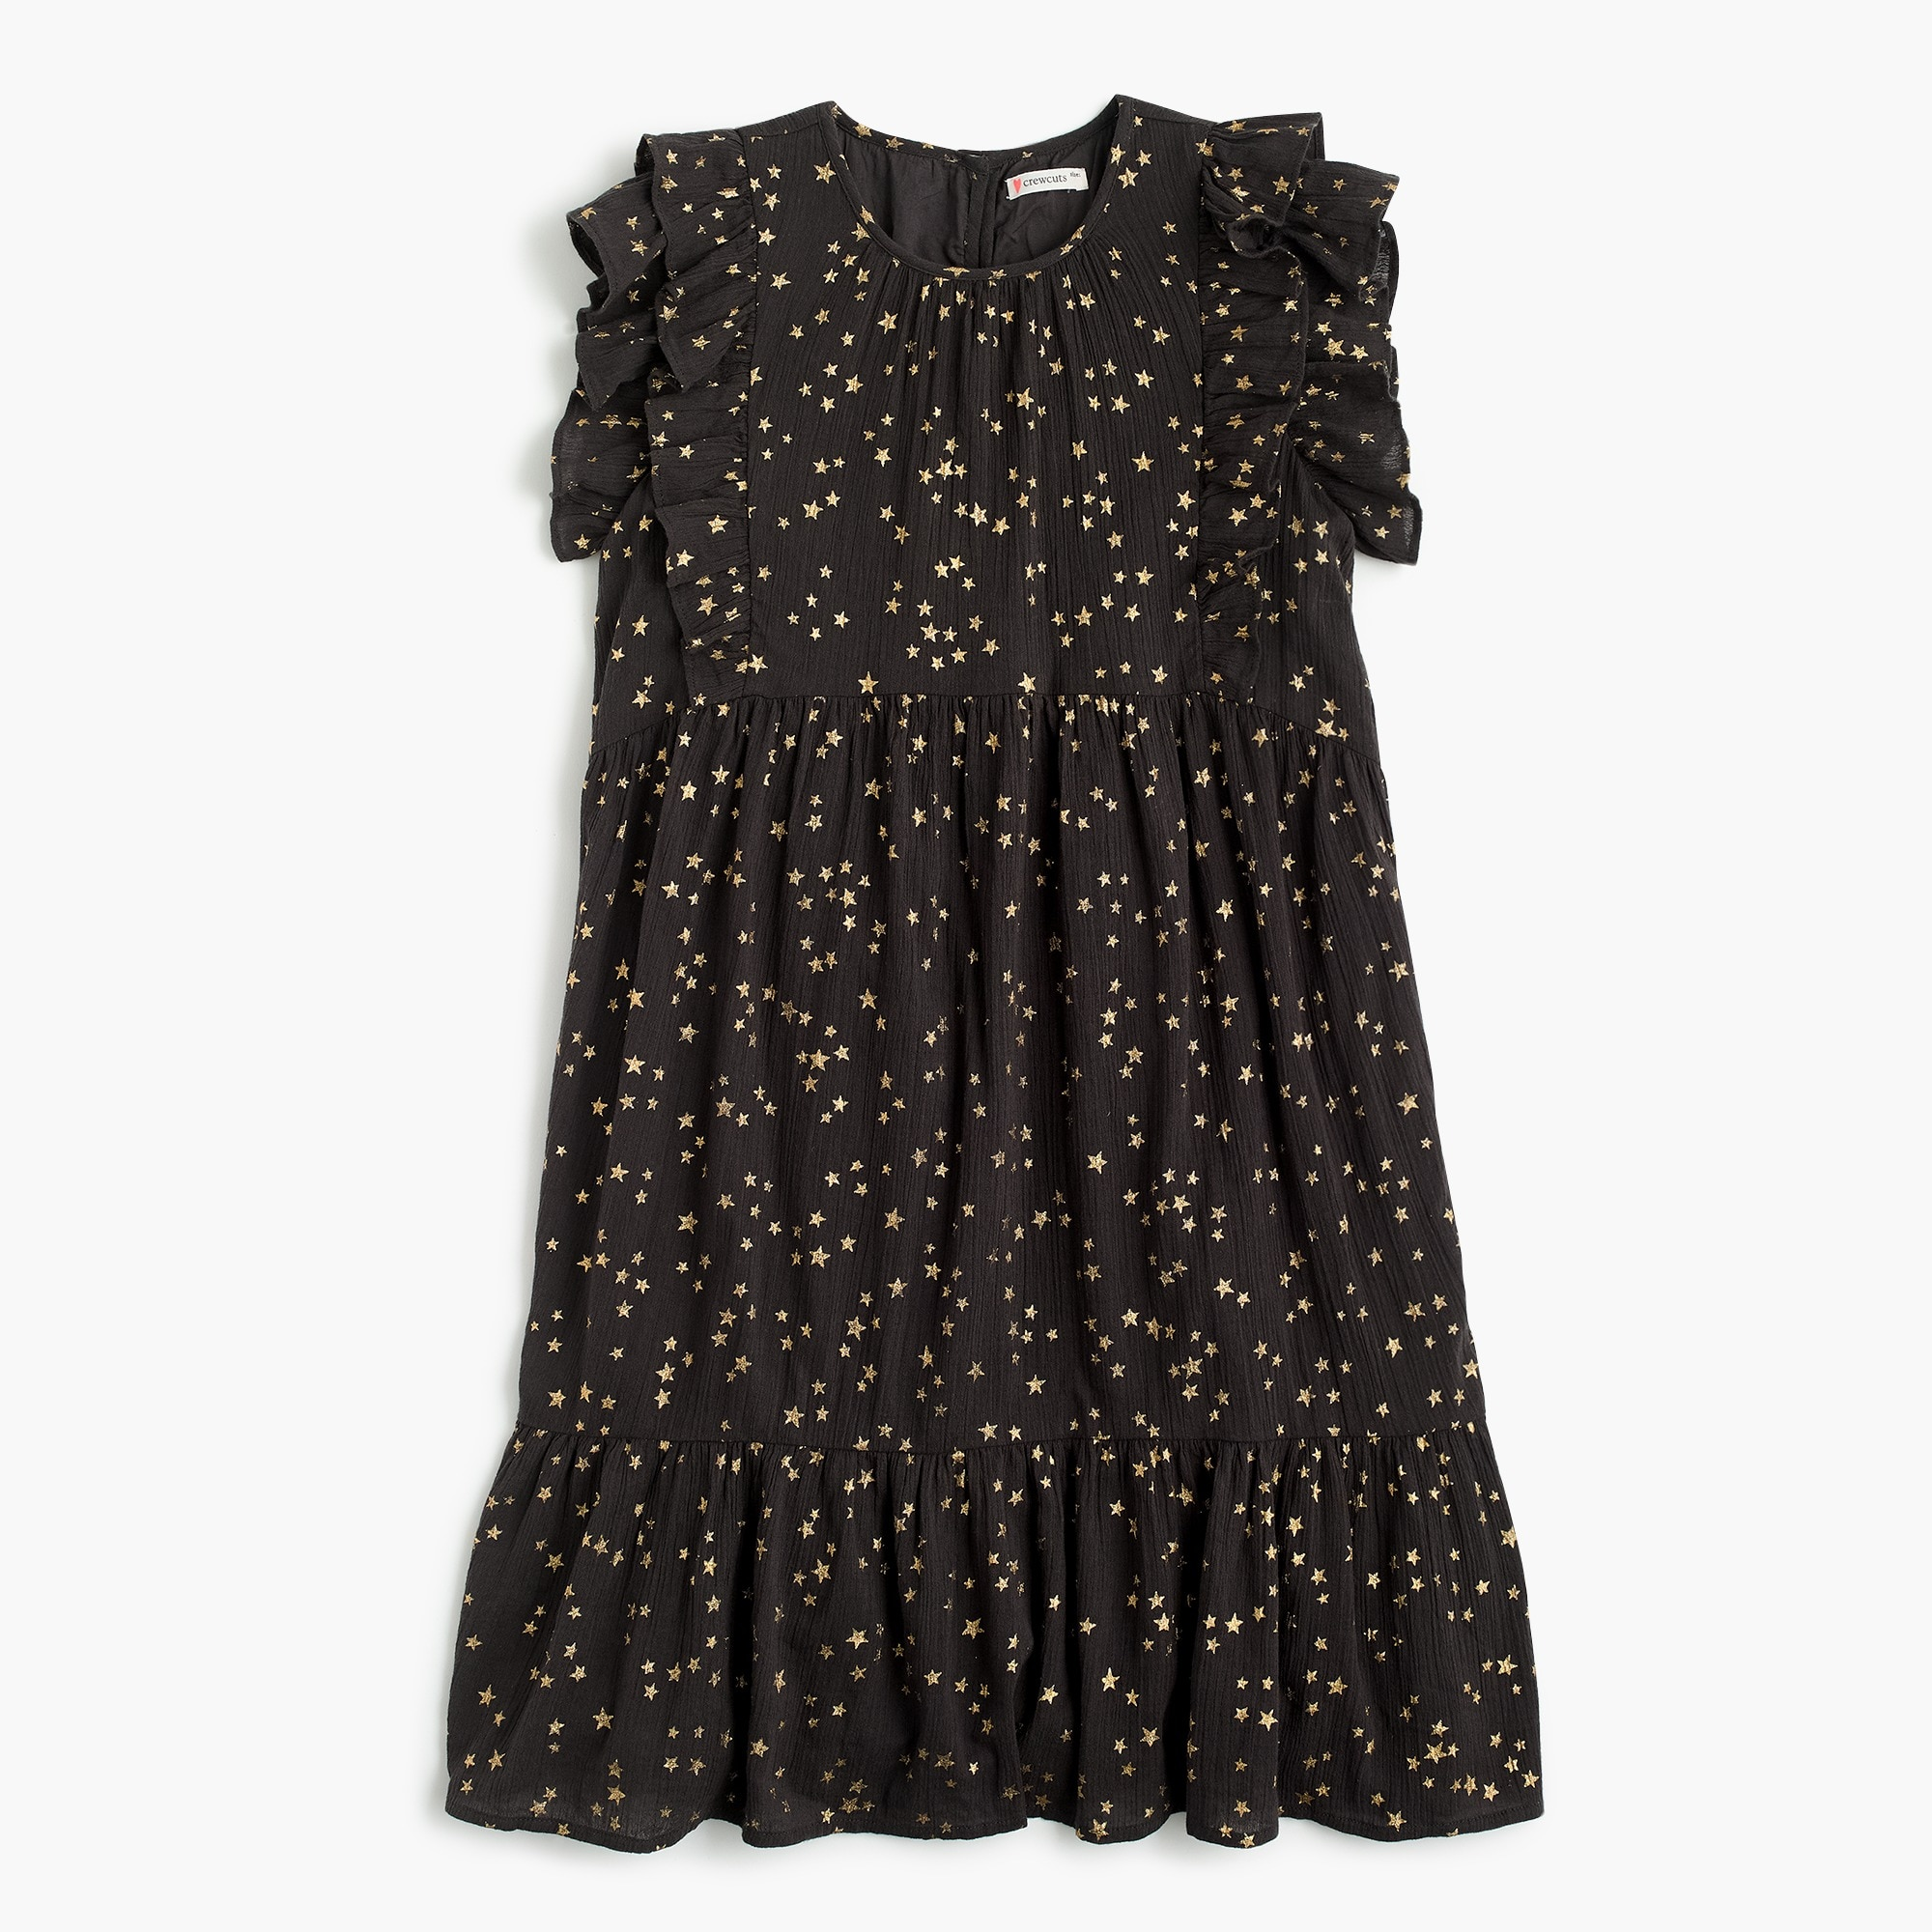 girls Girls' ruffle-trimmed dress in stars